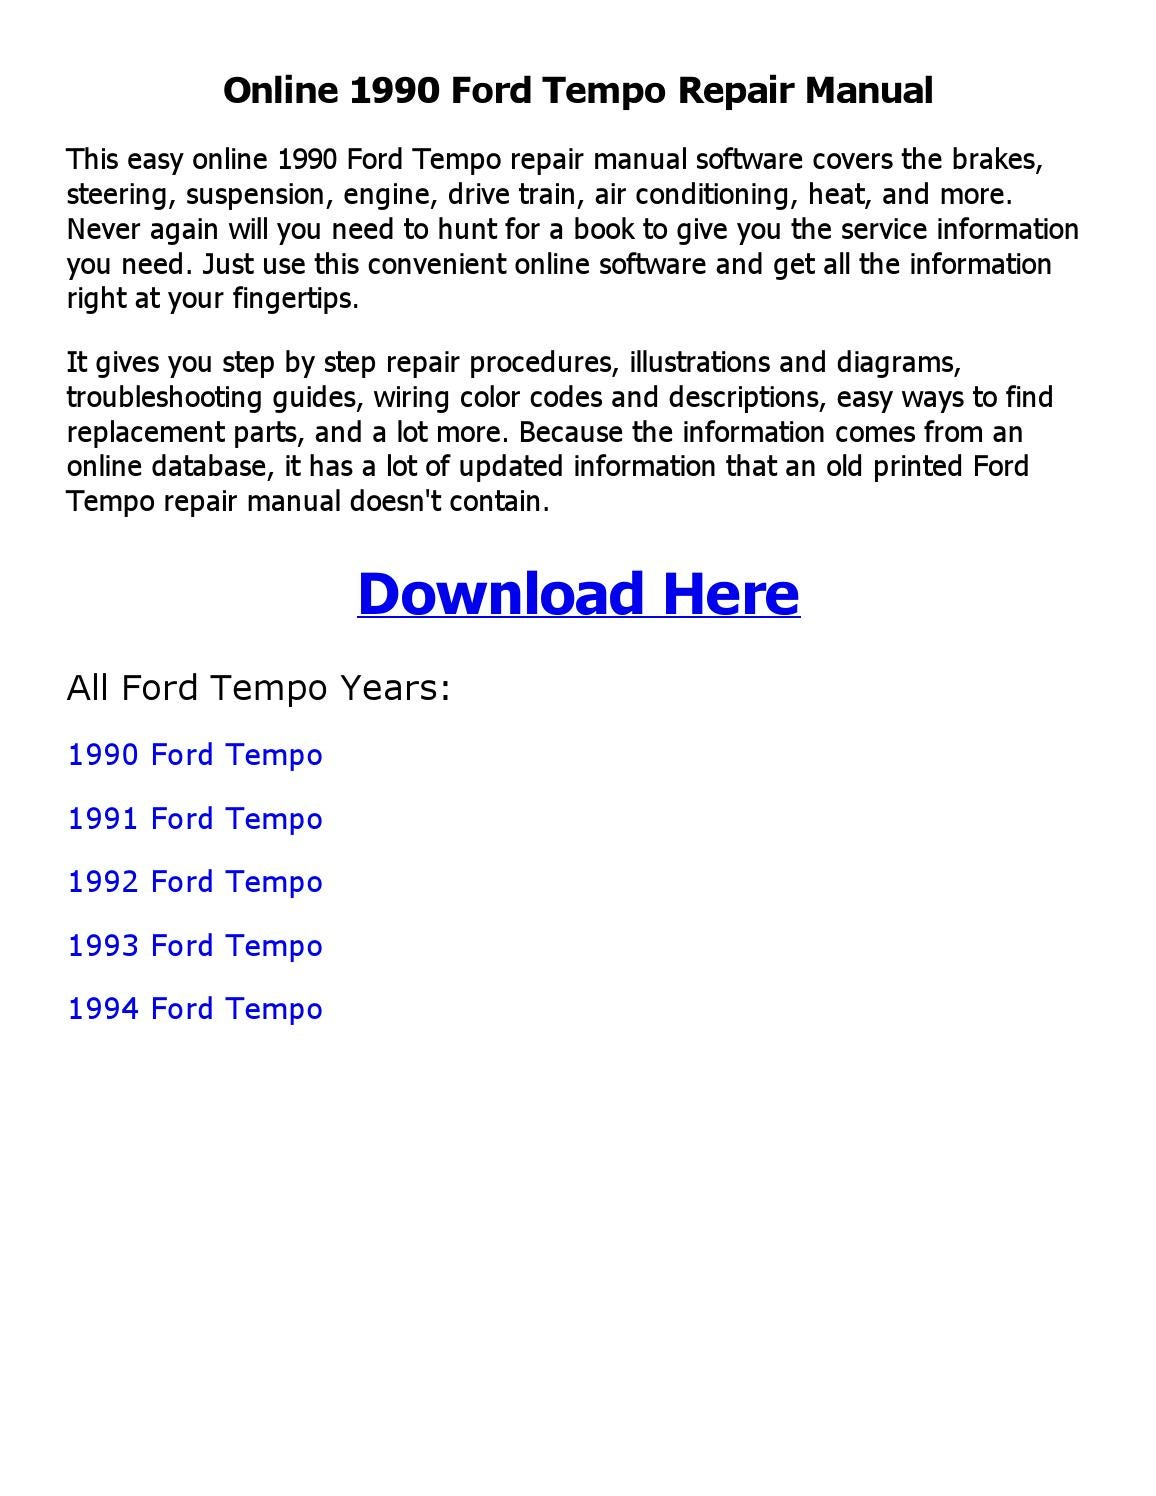 1990 Ford Tempo Repair Manual Online By Shoaibsiddique Issuu Wiring Diagram